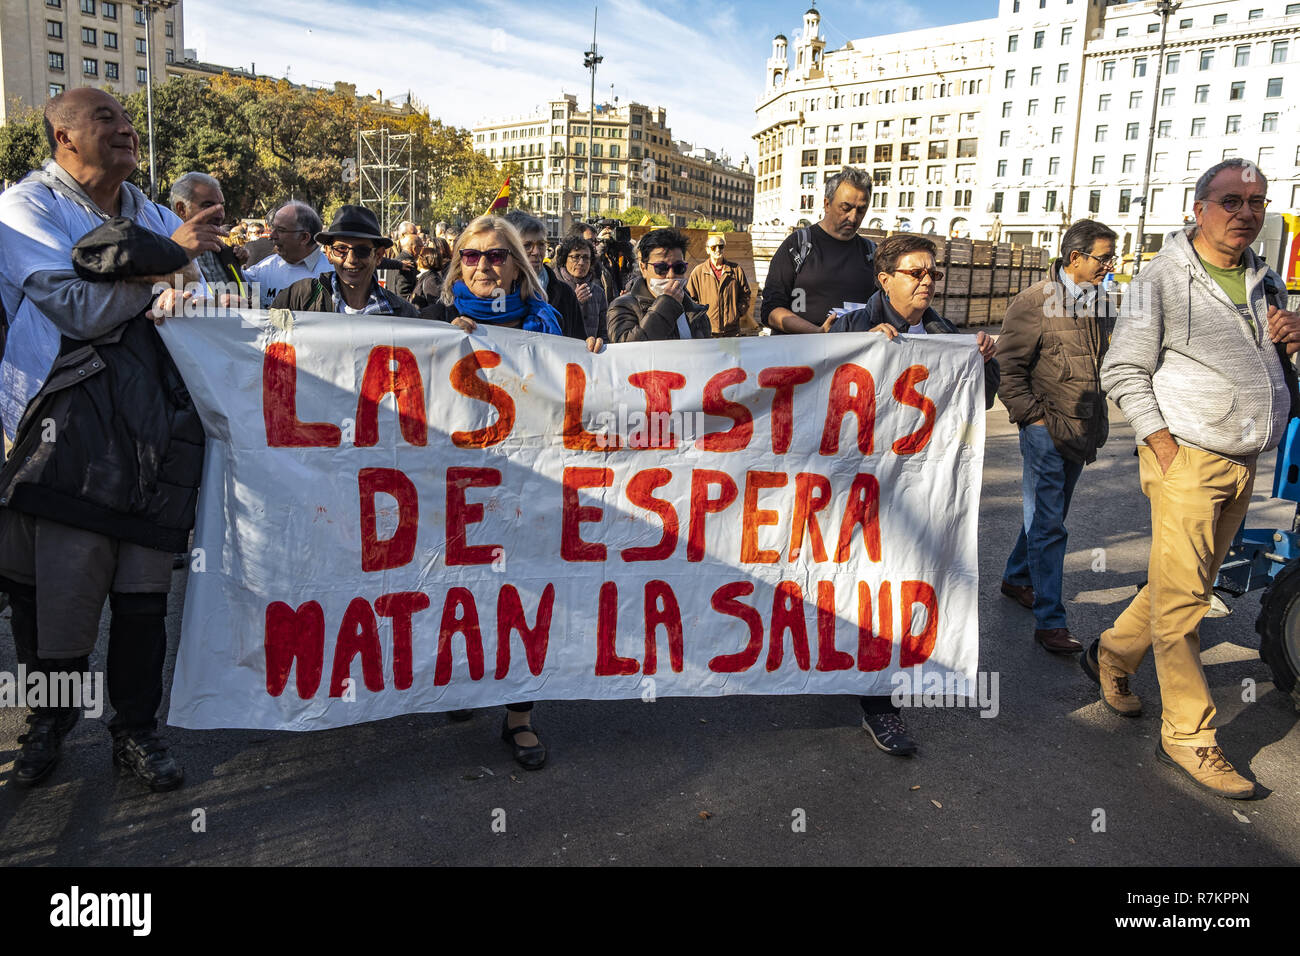 Barcelona, Catalonia, Spain. 10th December, 2018. Protesters are seen holding a banner against waiting lists of public health during the protest.Called by Marea Blanca Catalunya within the state fight against the waiting lists and the commercialization of health, the protesters have toured the center of Barcelona to finish in front of the Generalitat of Catalonia. Credit: Paco Freire/SOPA Images/ZUMA Wire/Alamy Live News - Stock Image